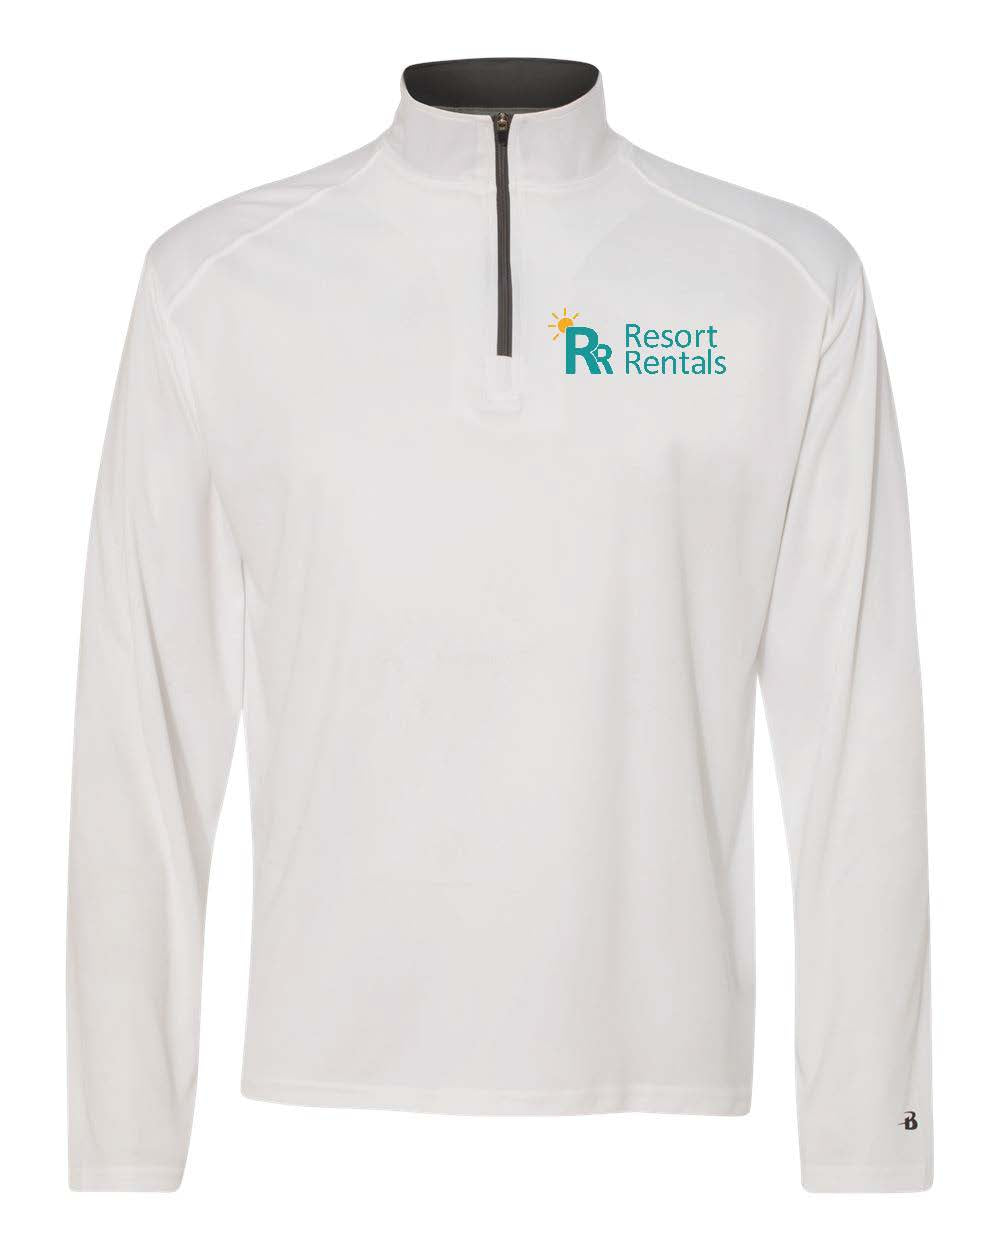 Resort Rentals - 1/4 Zip Men's Pullover